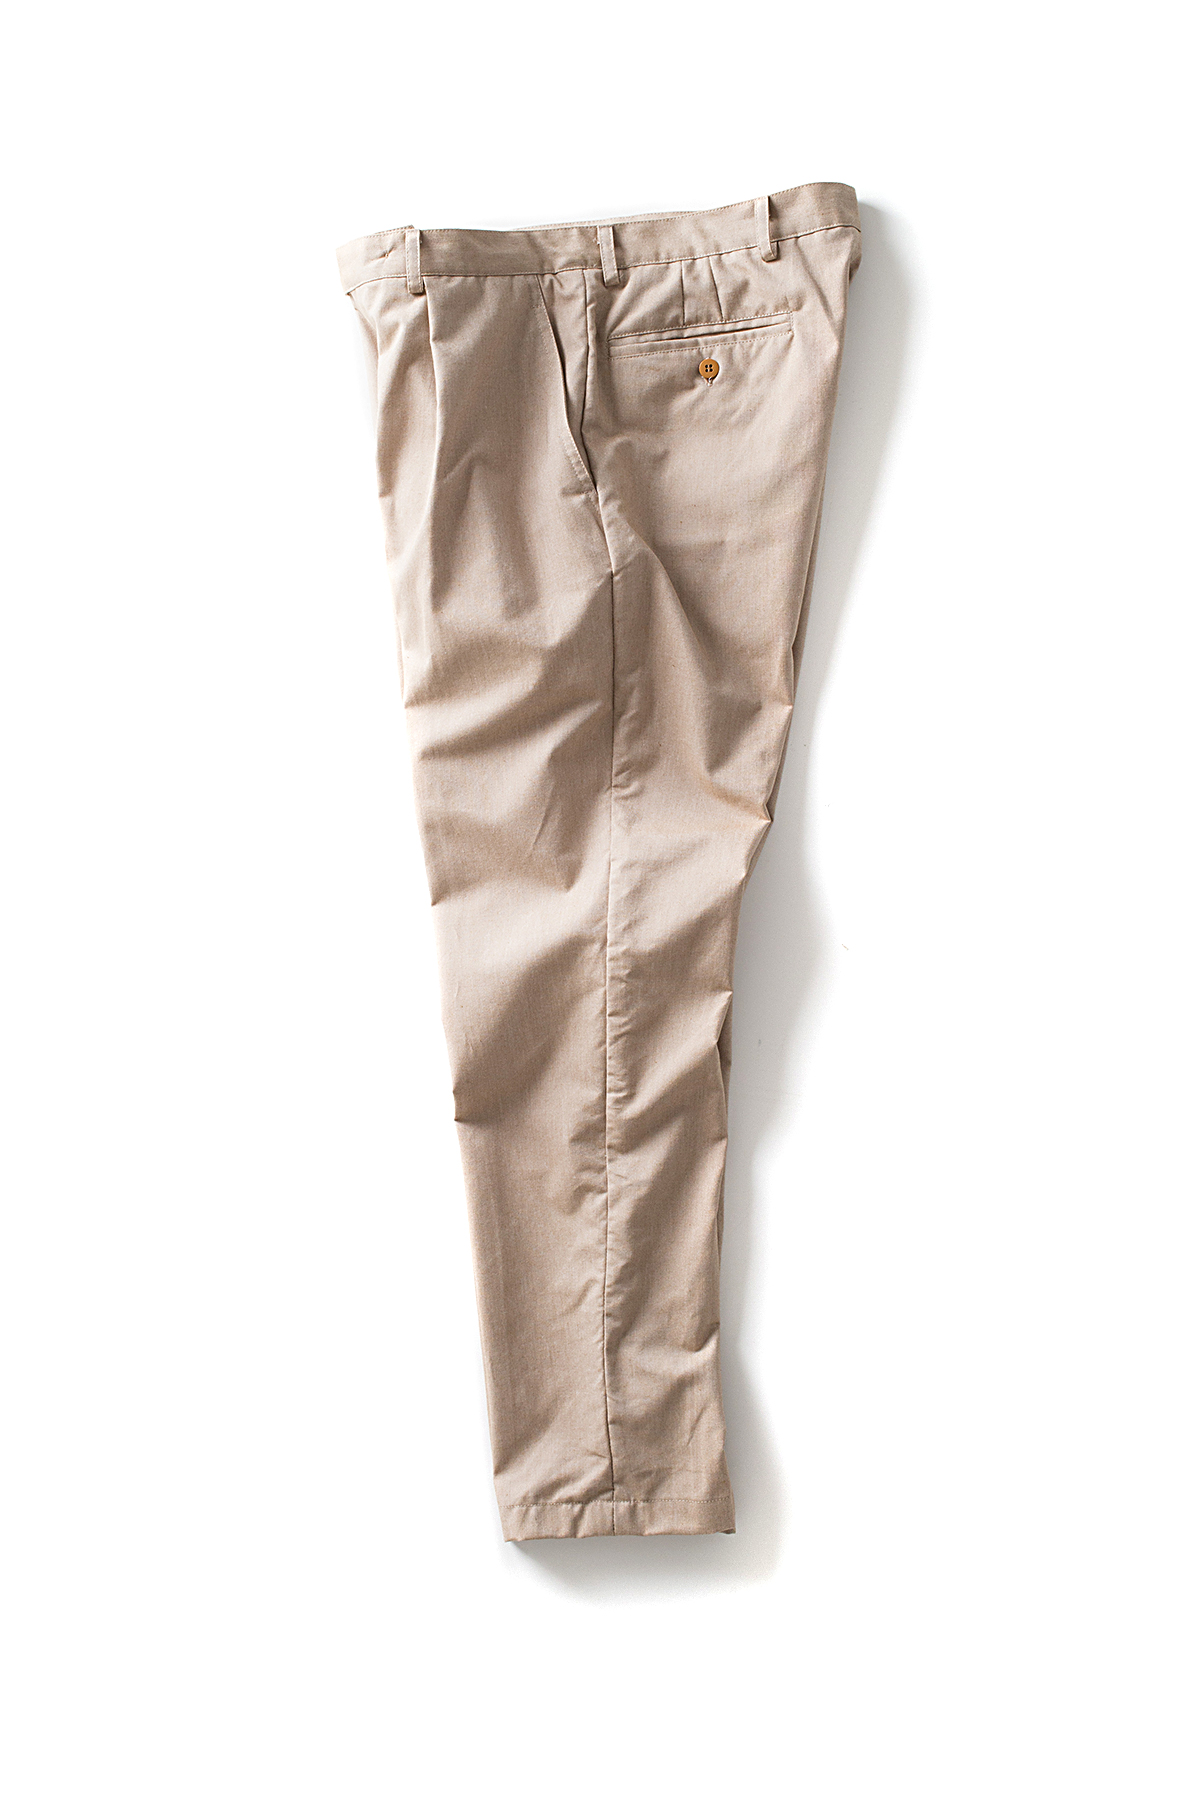 CAMO : Classic Trousers (Heavy Oxford Beige)